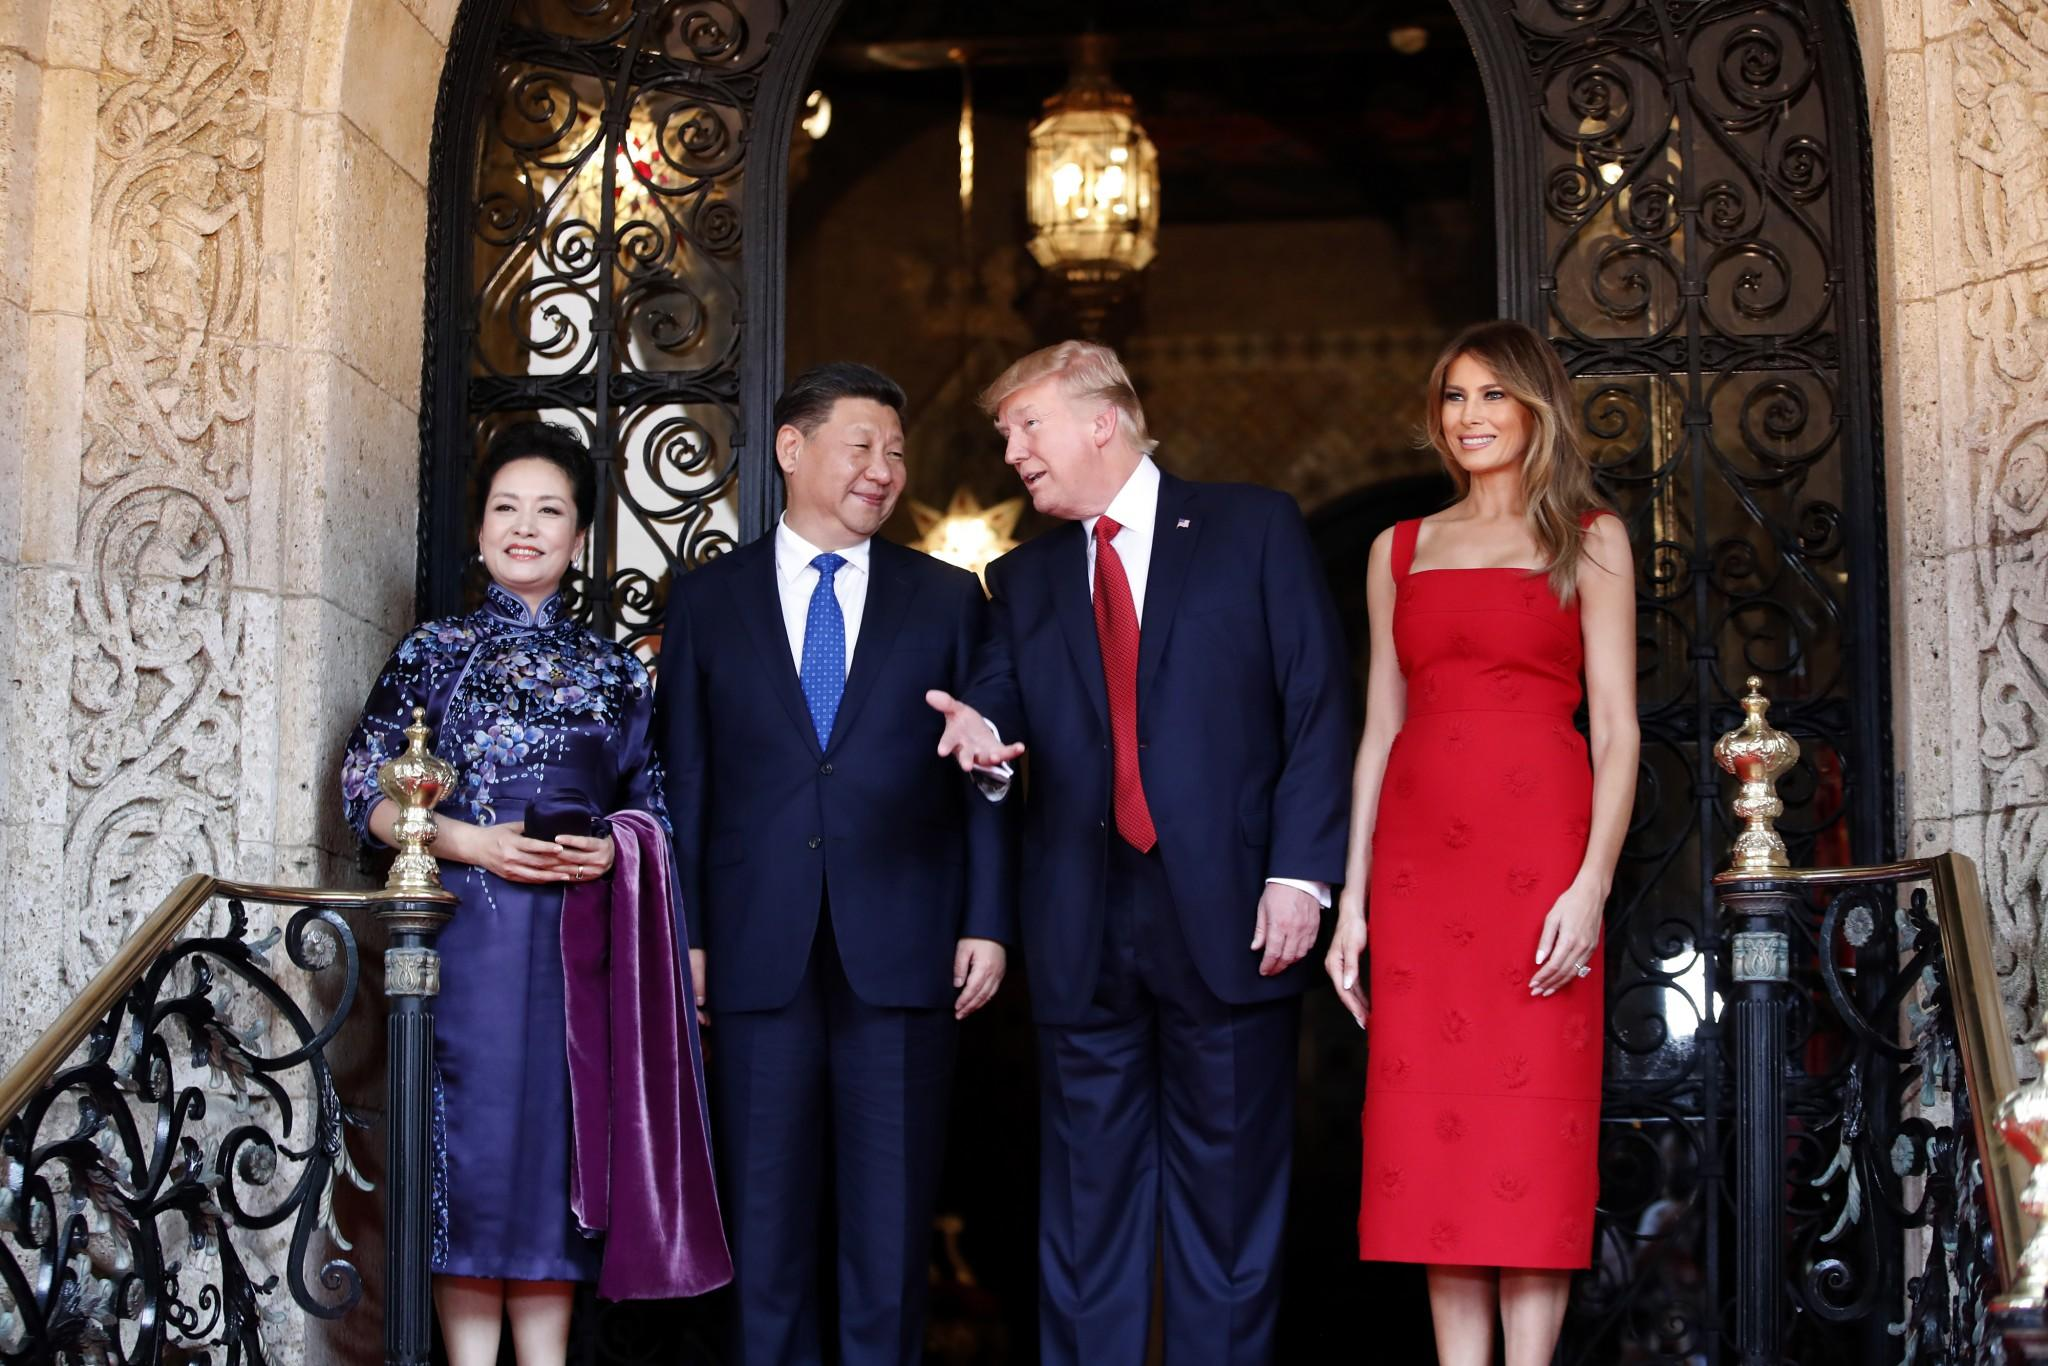 President Trump and Chinese President Xi Jinping with their wives, first lady Melania Trump and Chinese first lady Peng Liyuan, at Mar-a-Lago. (Photo: Alex Brandon/AP)